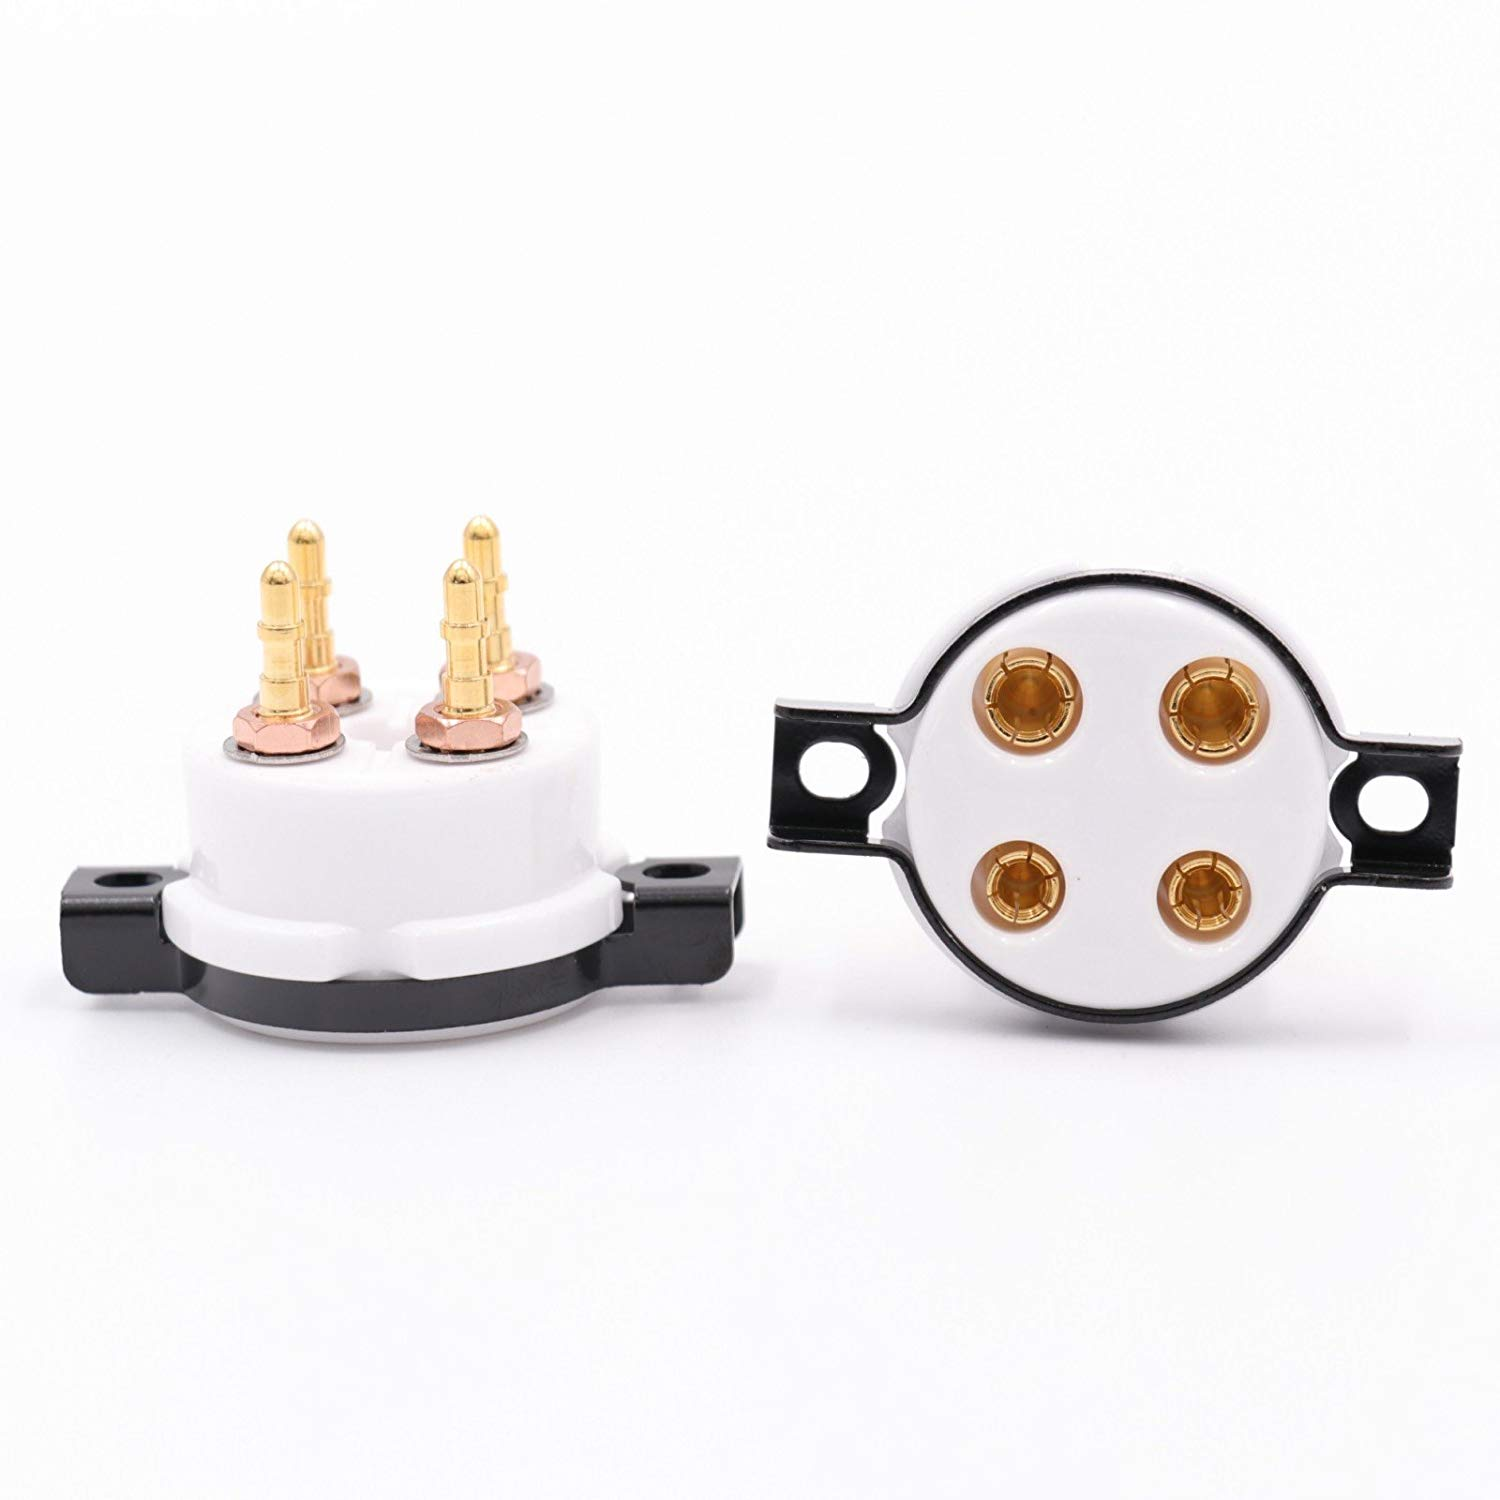 Free Shipping Electronic Components & Supplies 300b 2a3 For Large Four-leg Flat Gold-plated Tube Socket Sensors